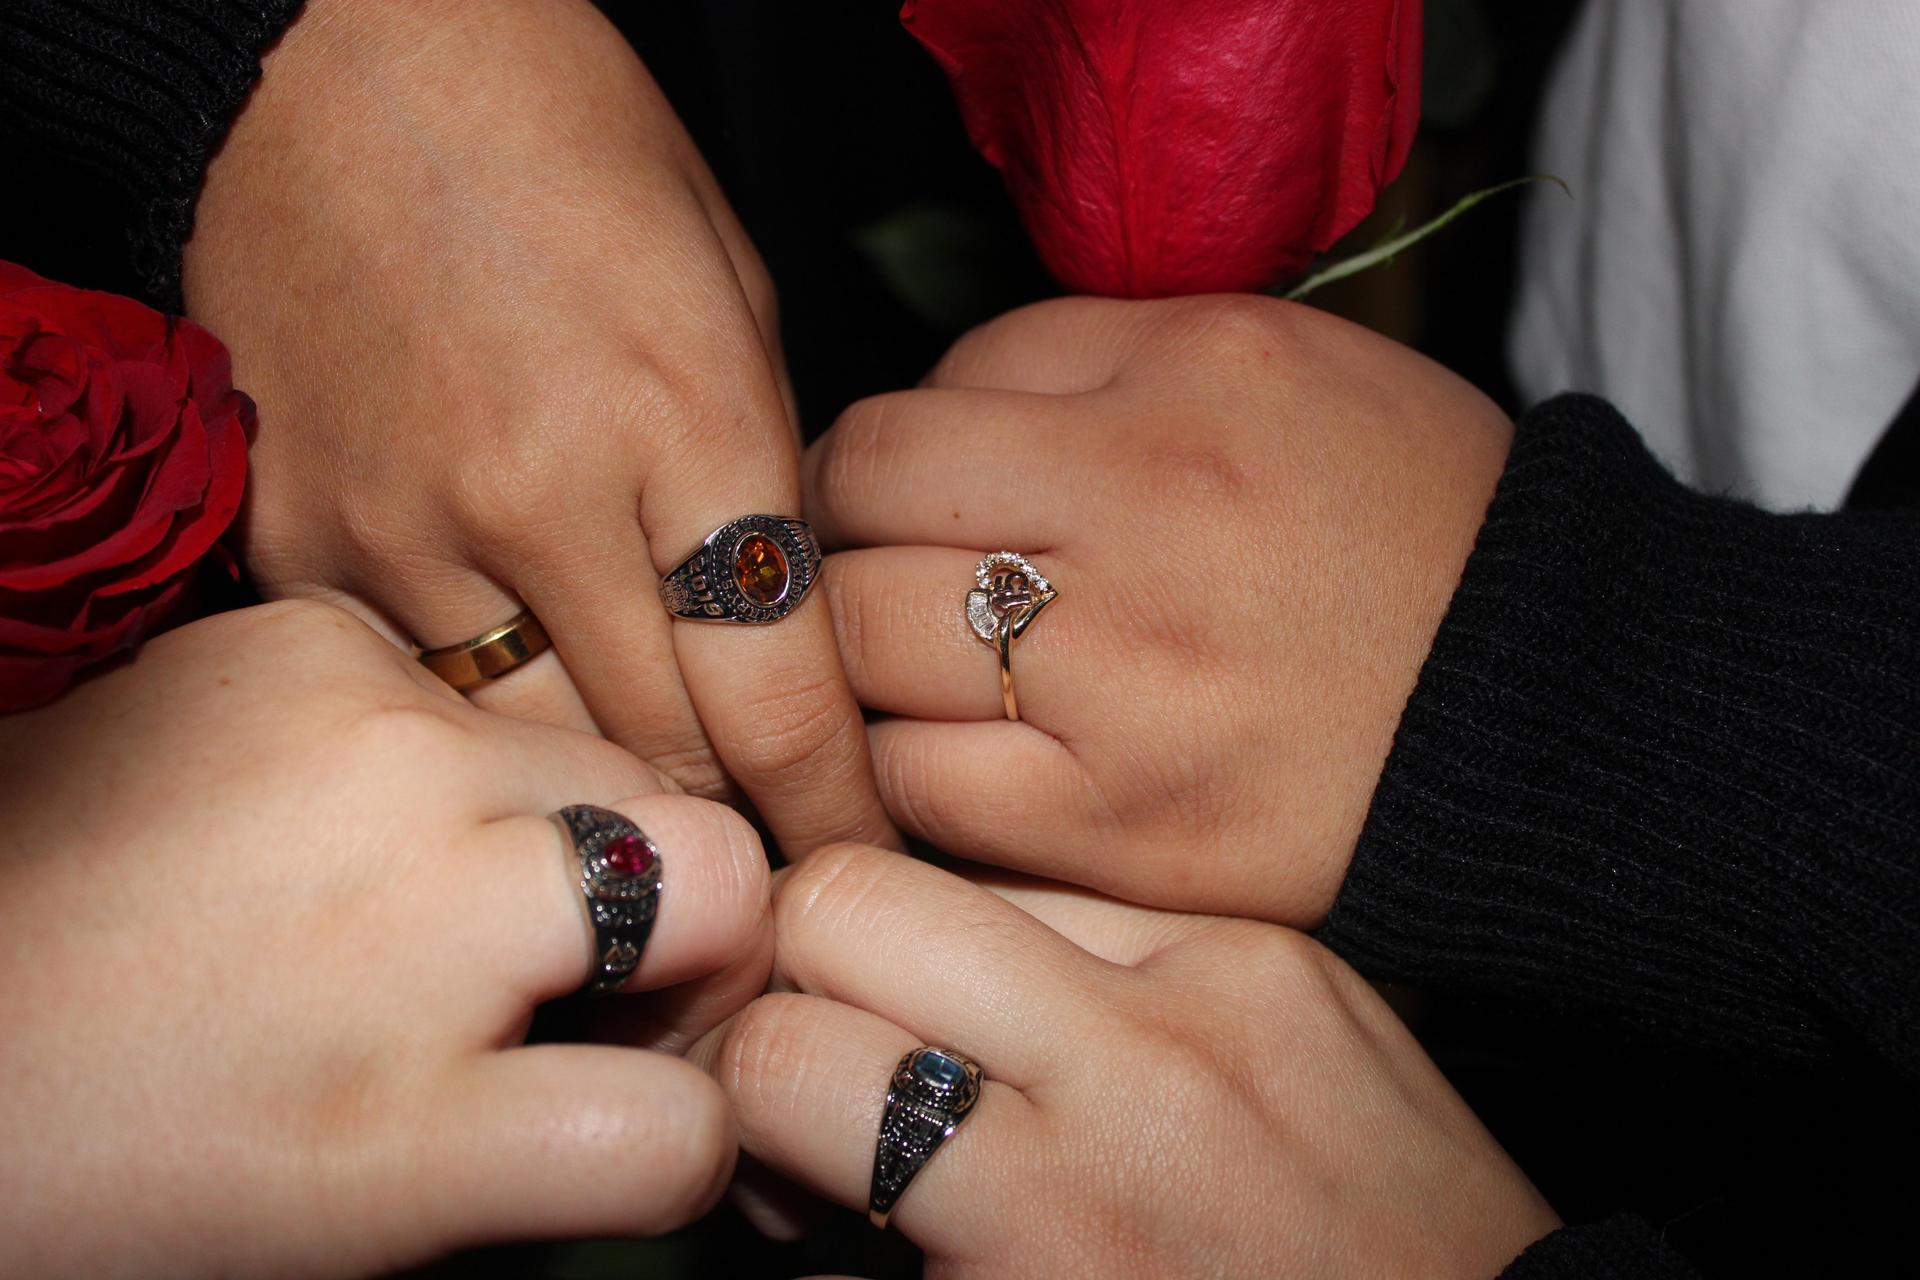 group of 4 students' hands with rings